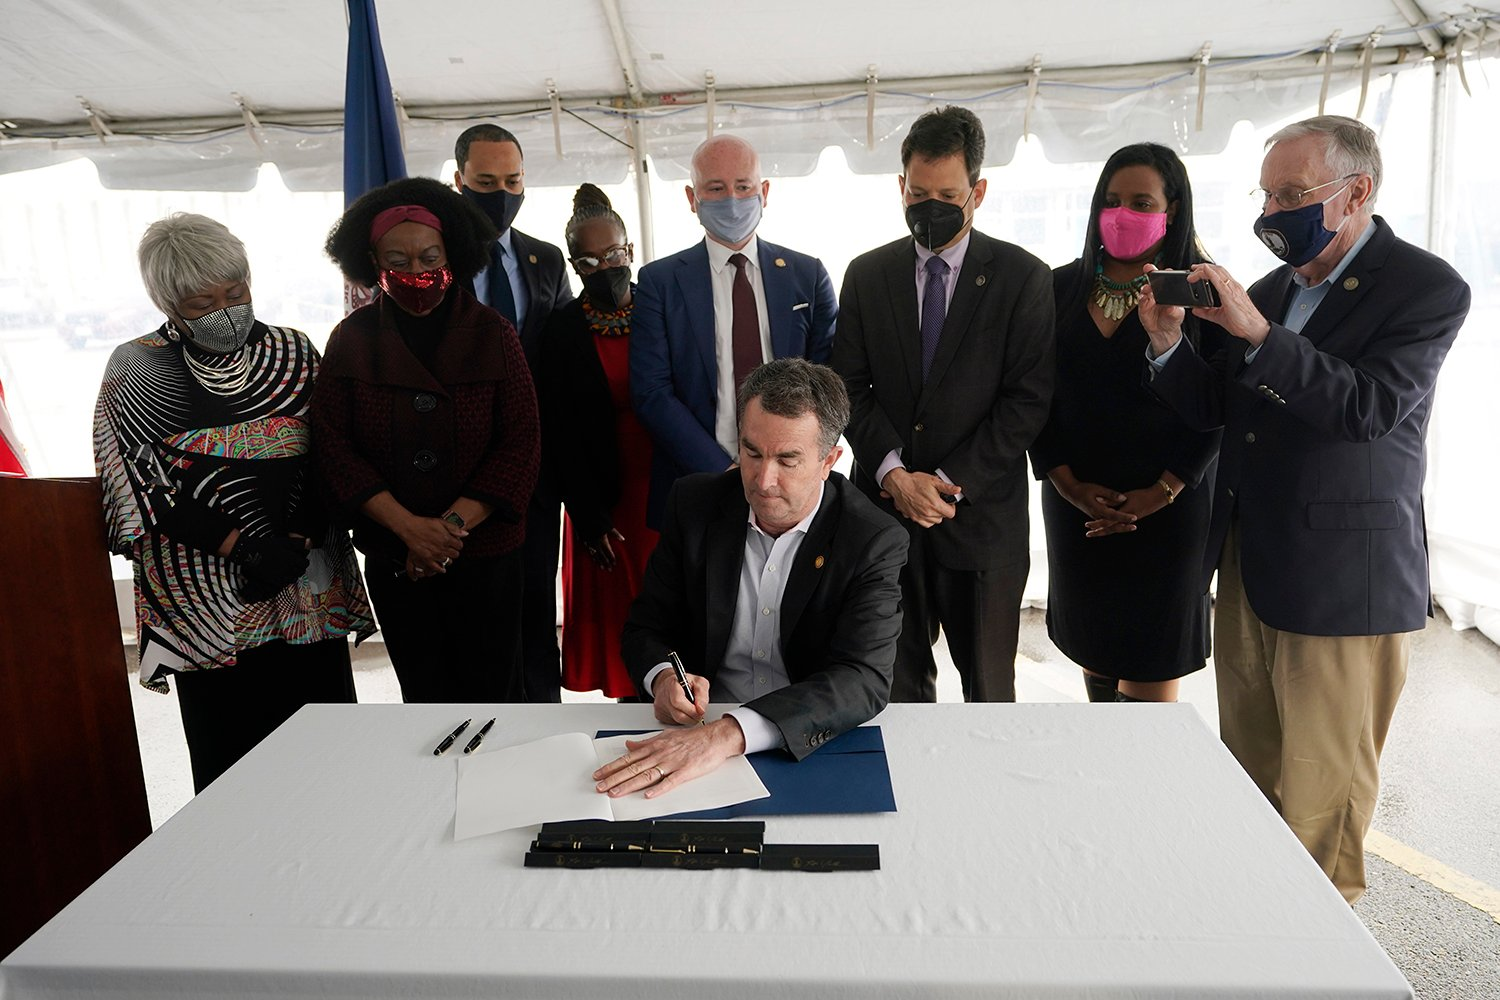 Virginia Gov. Ralph Northam, seated center, signs a bill abolishing the death penalty surrounded by legislators and activists at Greensville Correctional Center in Jarratt, Va., Wednesday, March 24, 2021. (AP Photo/Steve Helber)